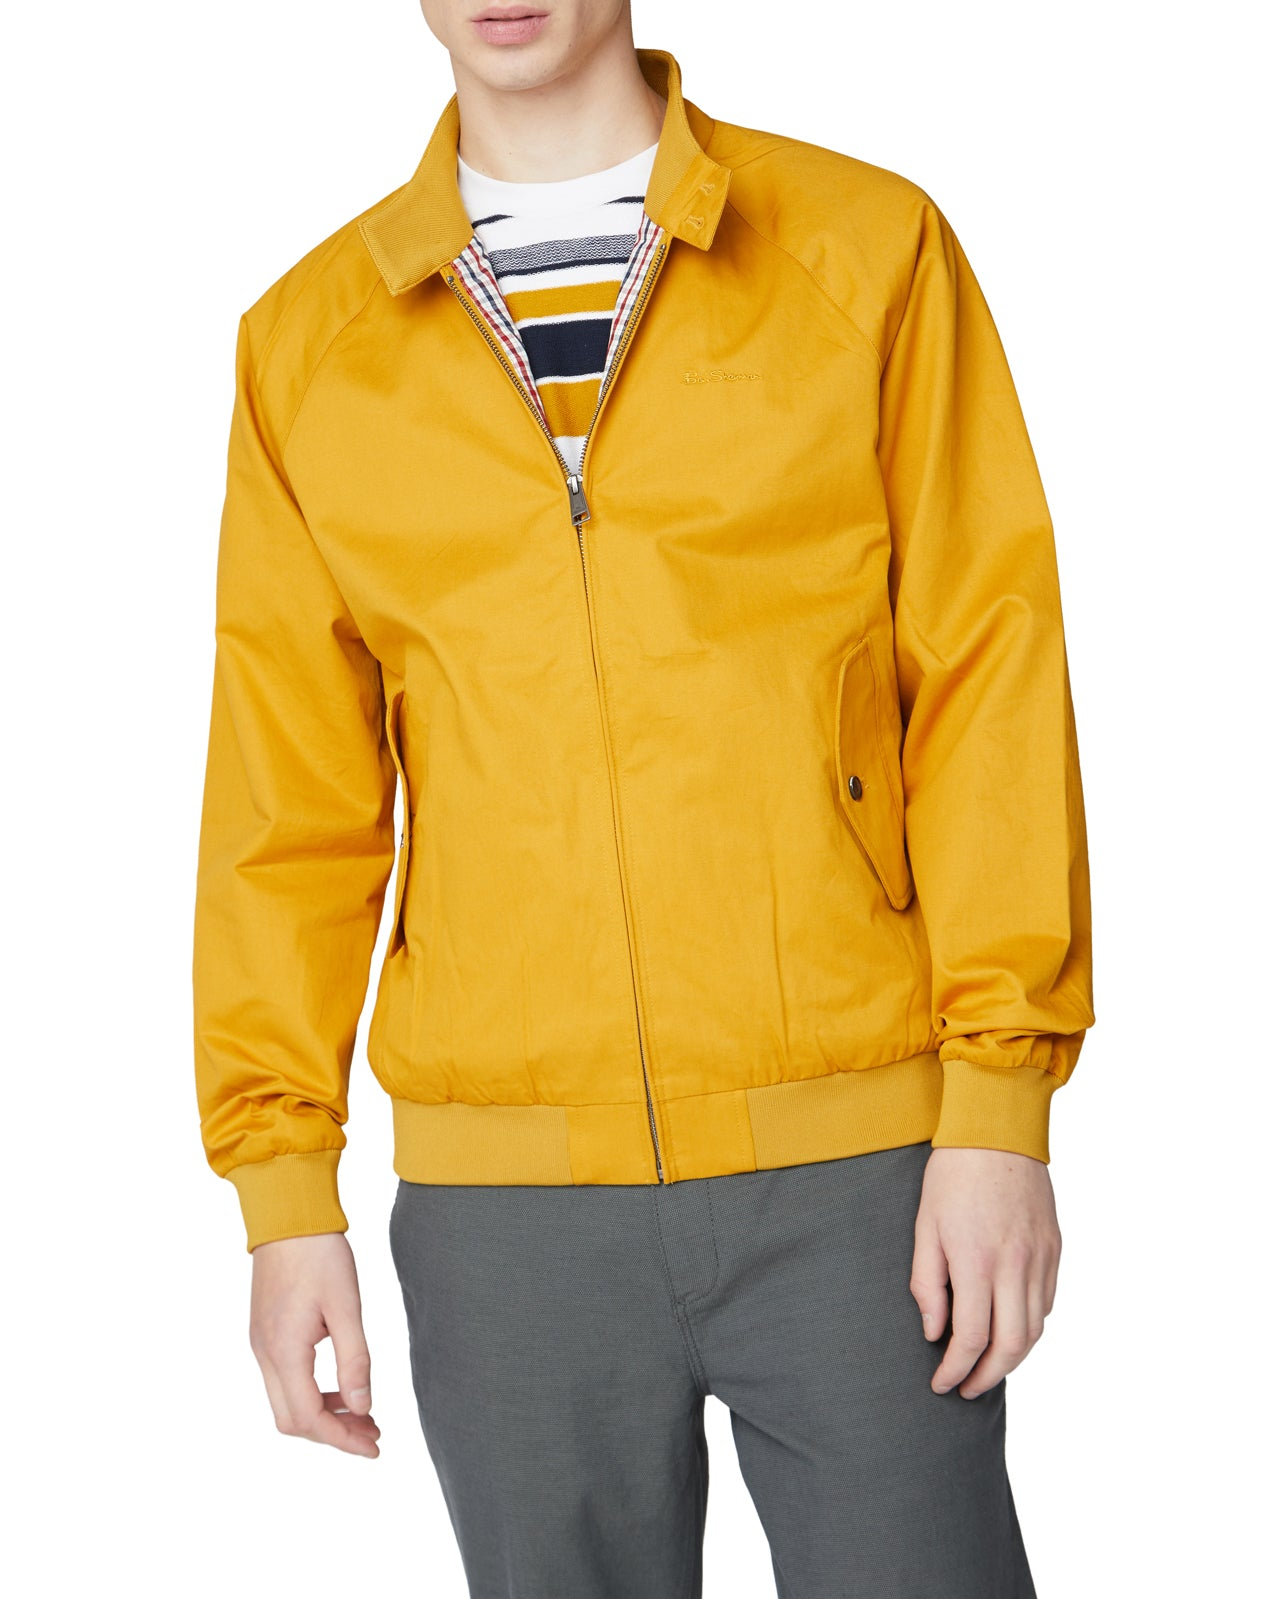 Signature Harrington Jacket - Ochre